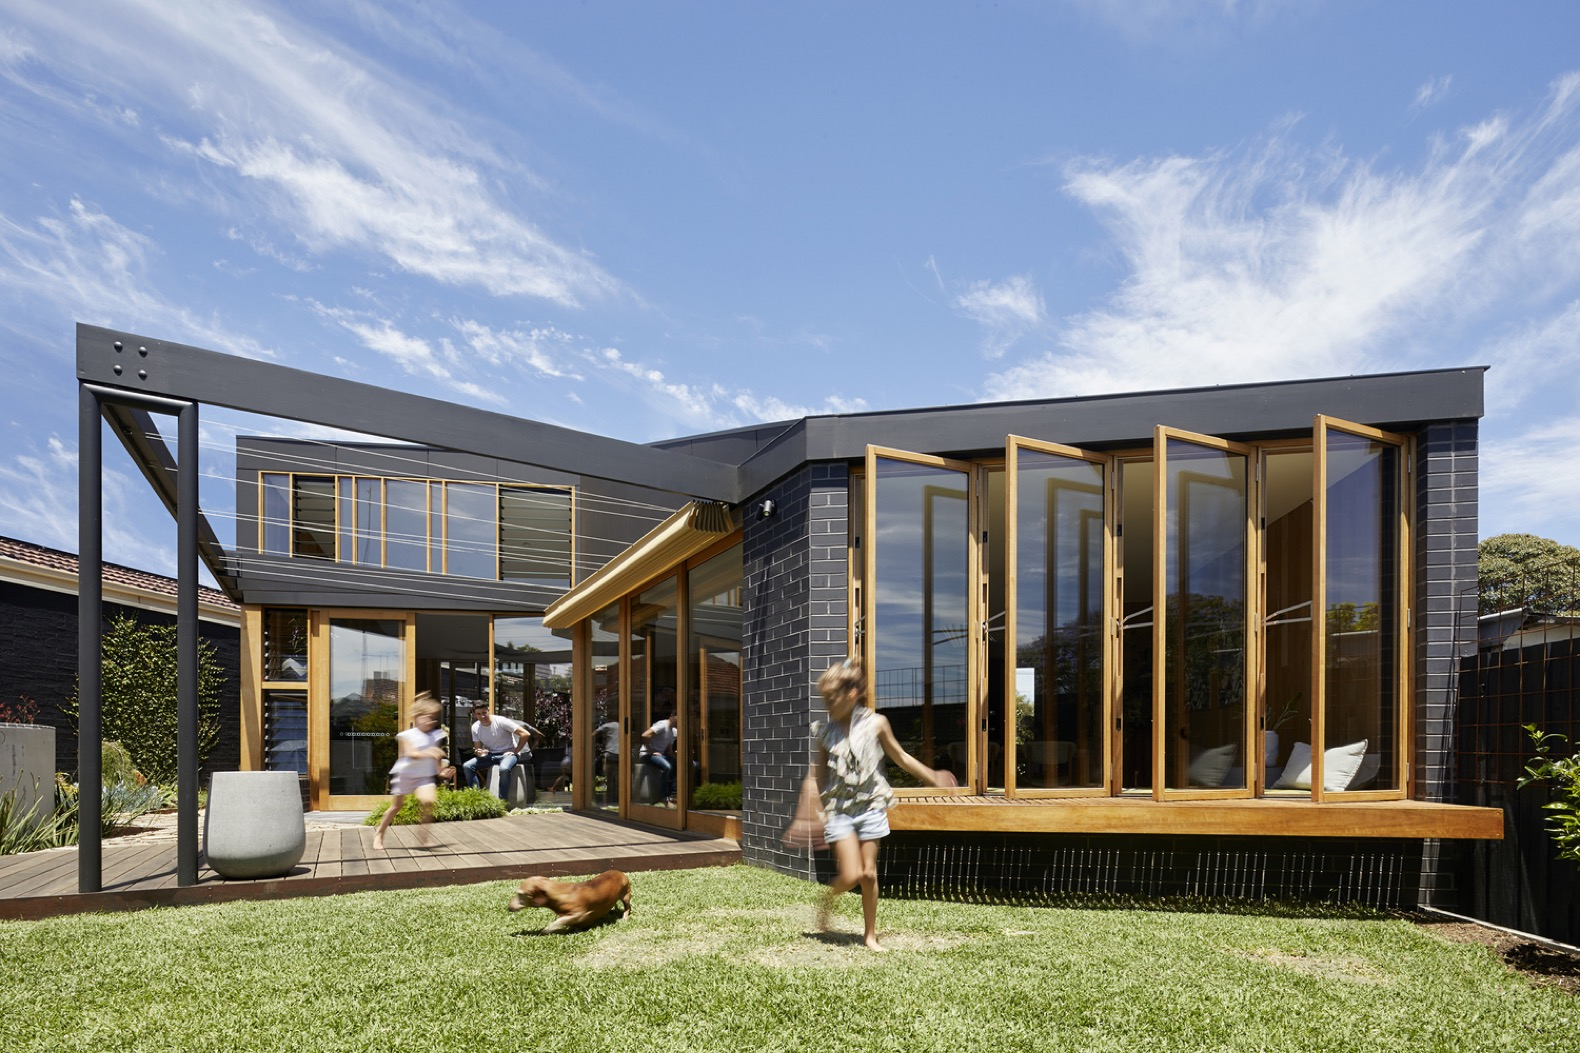 Breezy caravan-inspired annex uses passive design for thermal comfort